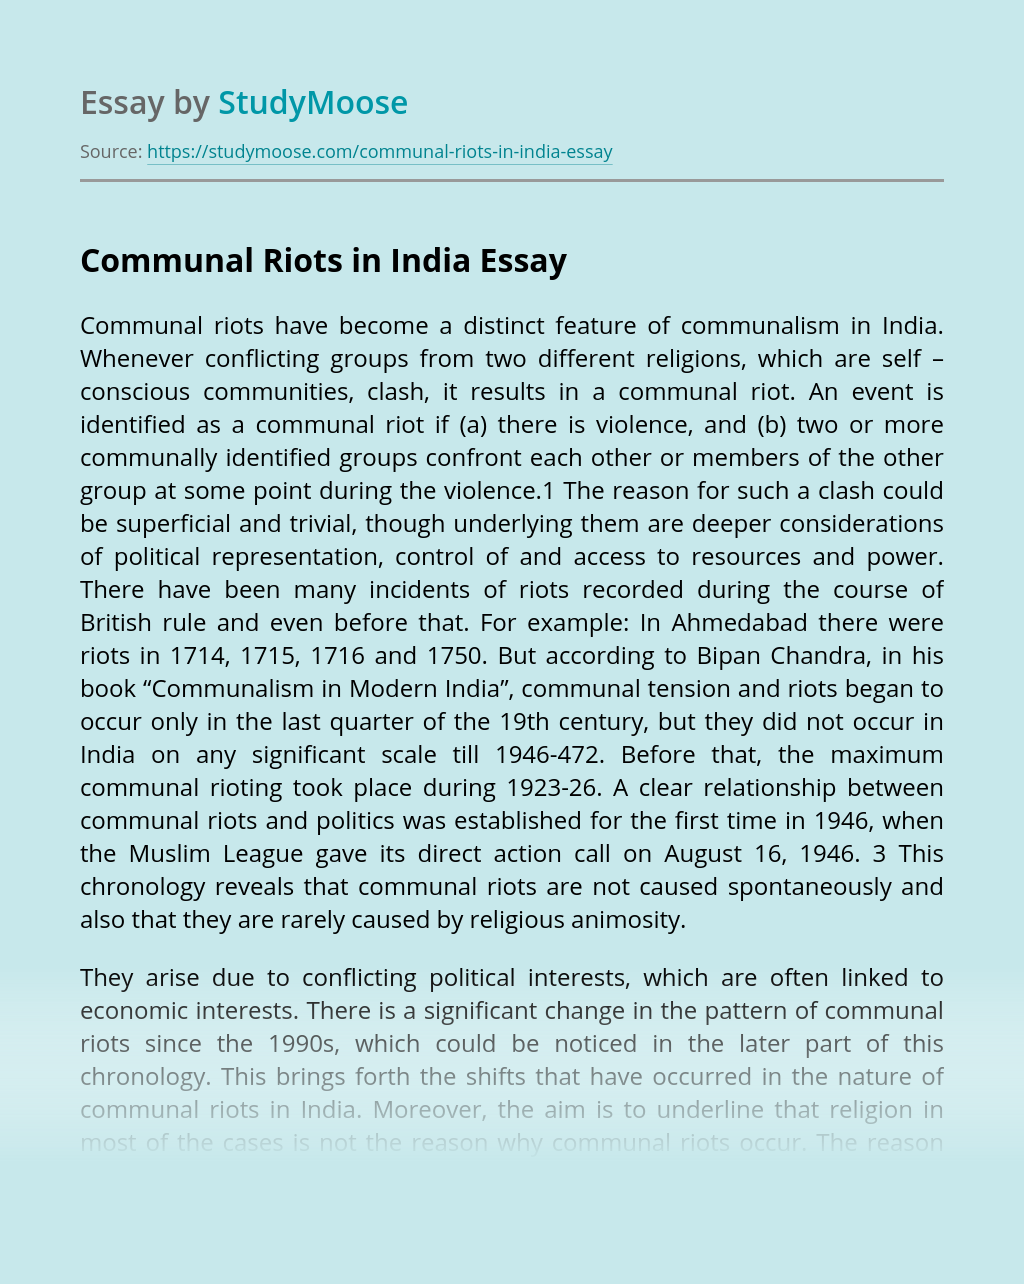 Communal Riots in India